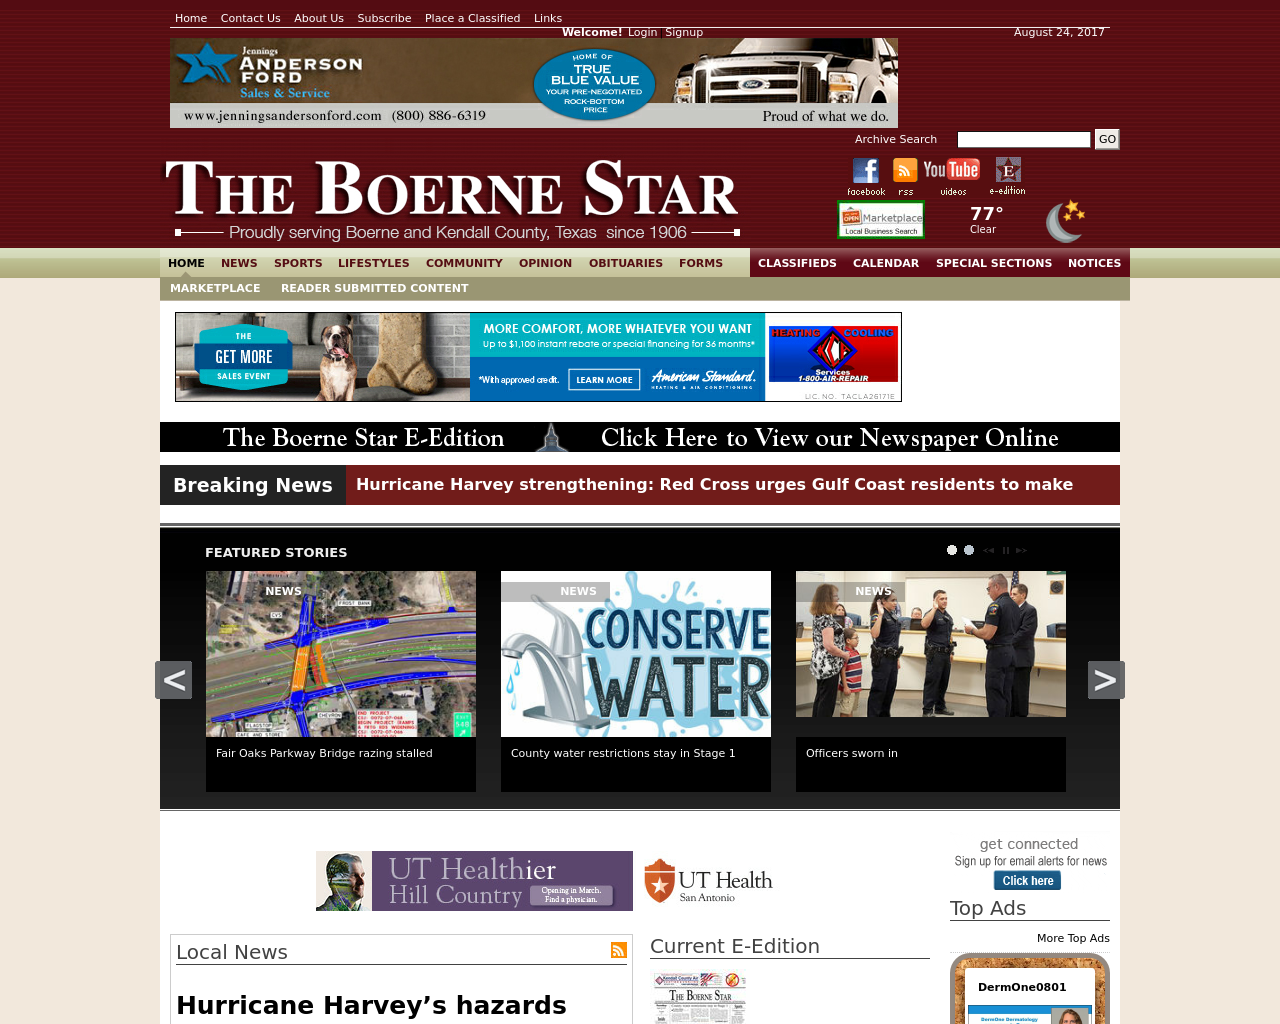 THE-BOERNE-STAR-Advertising-Reviews-Pricing